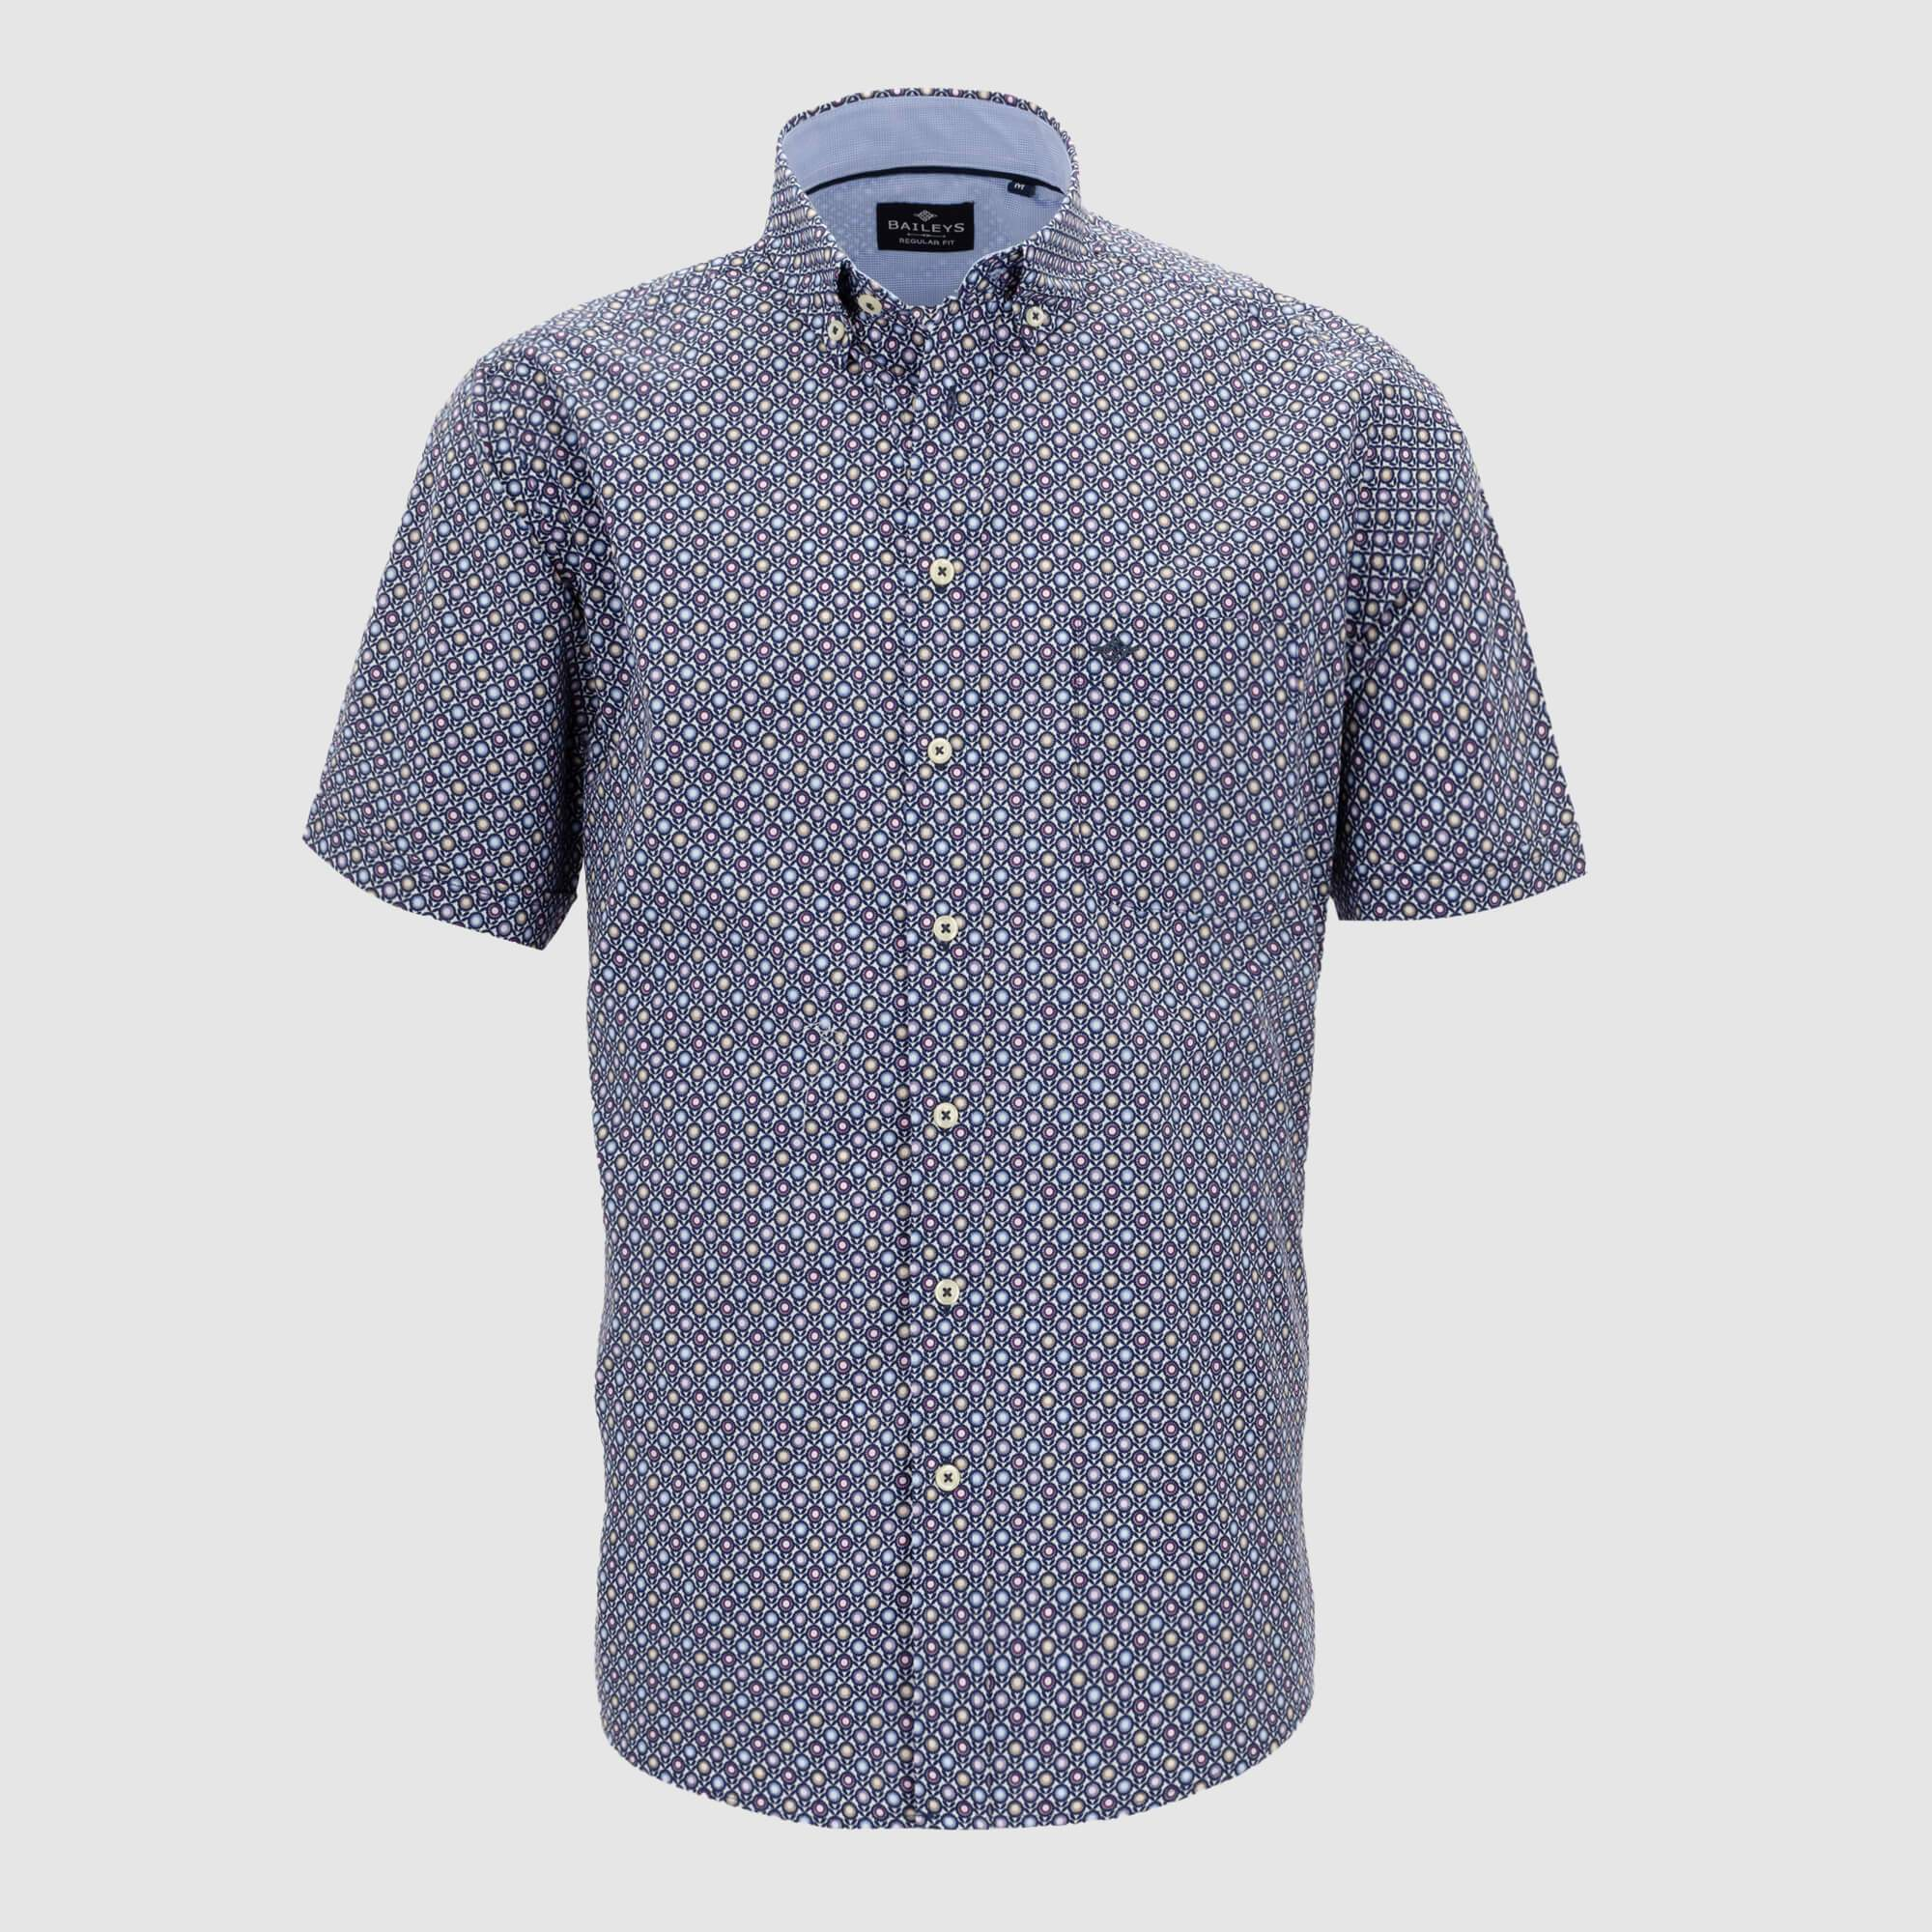 Camisa estampada manga corta regular fit 106681